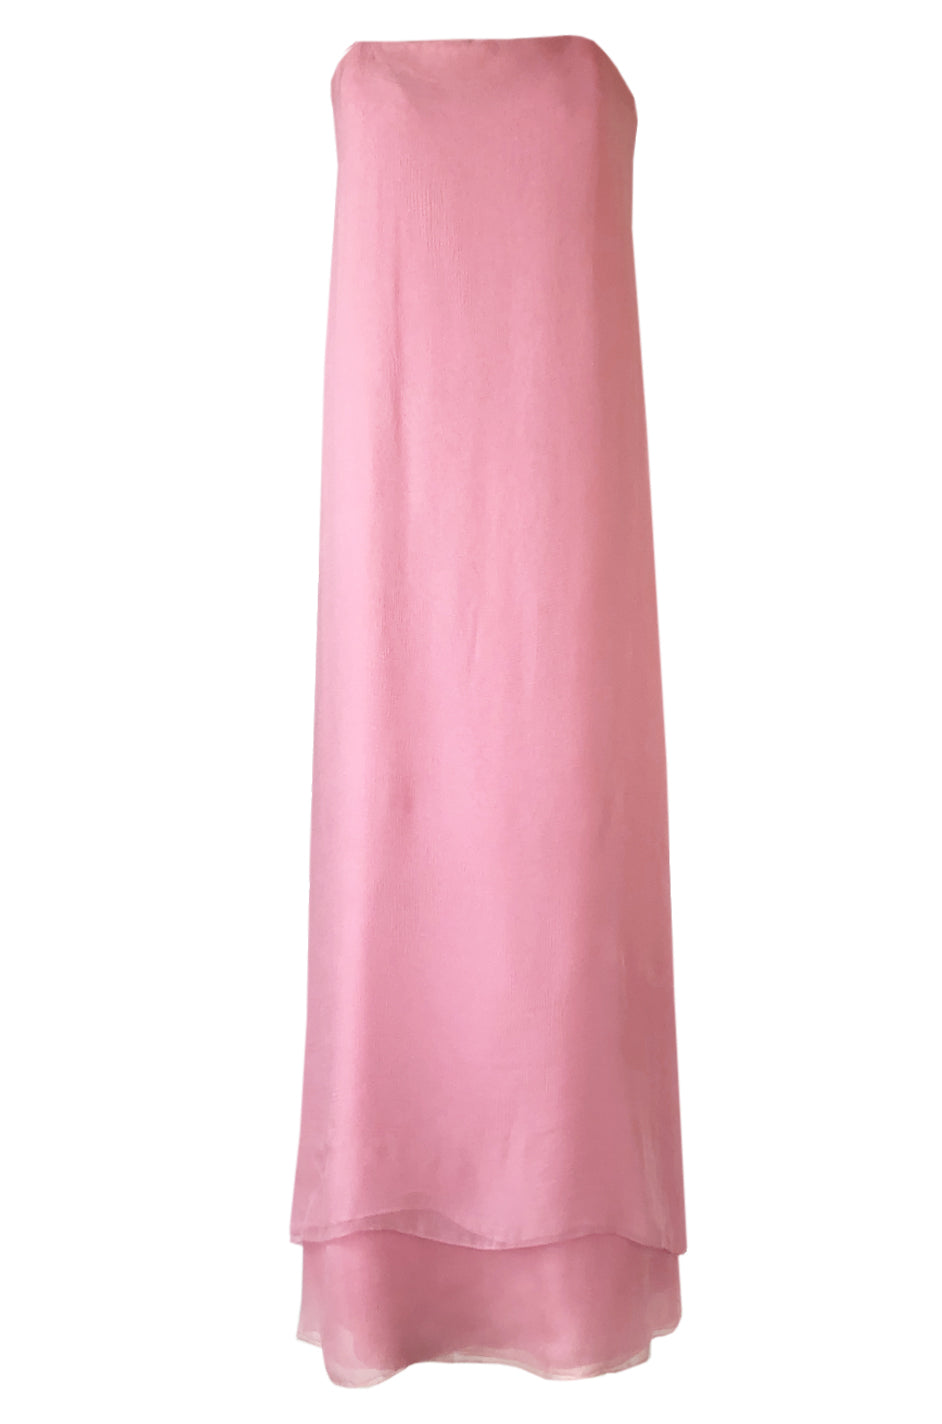 a54b7b64ad 1960s George Stavropoulos Strapless Layered Light Pink SIlk Chiffon Dress